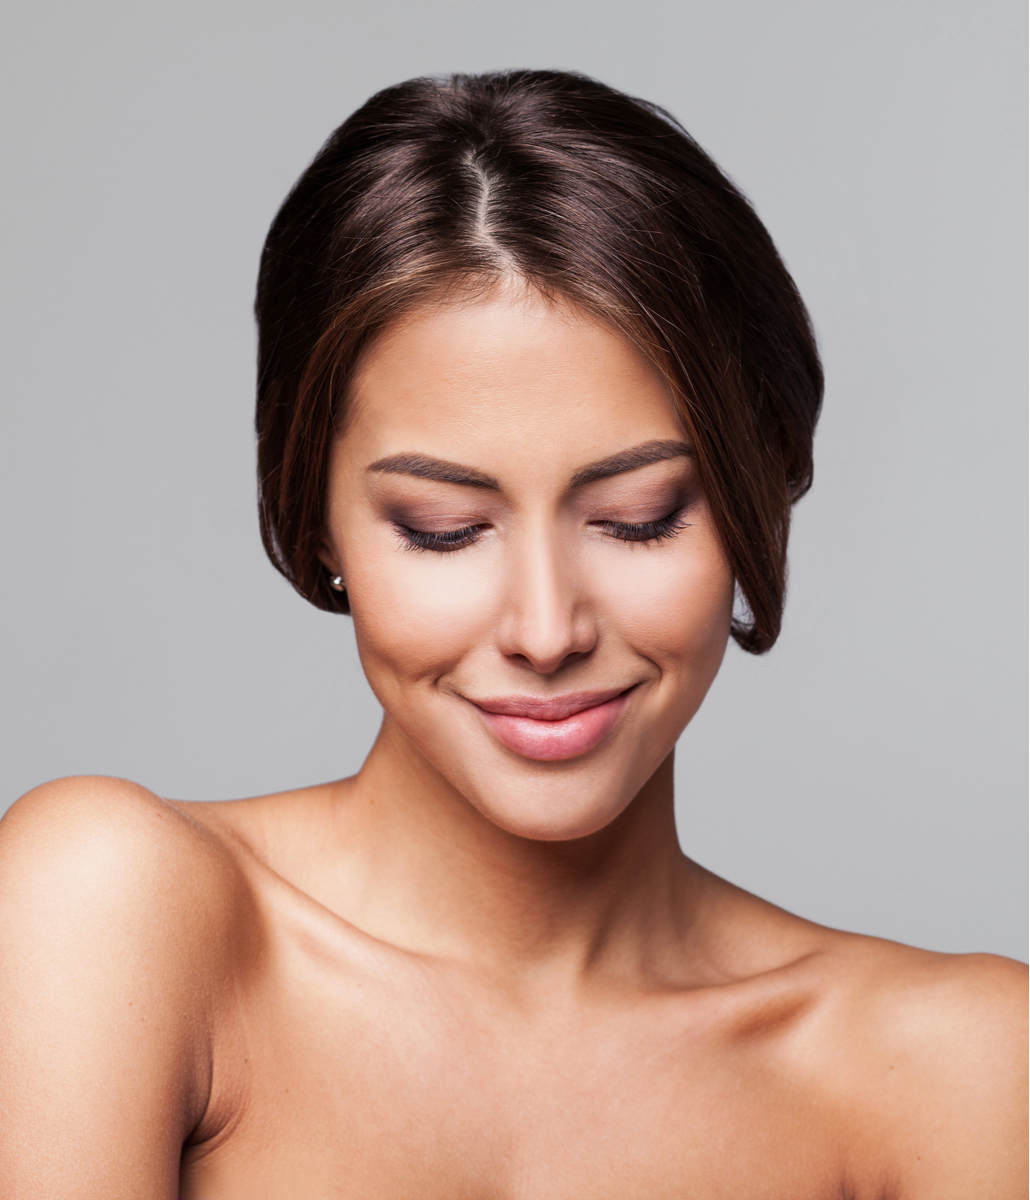 antiwrinkle injections sydney